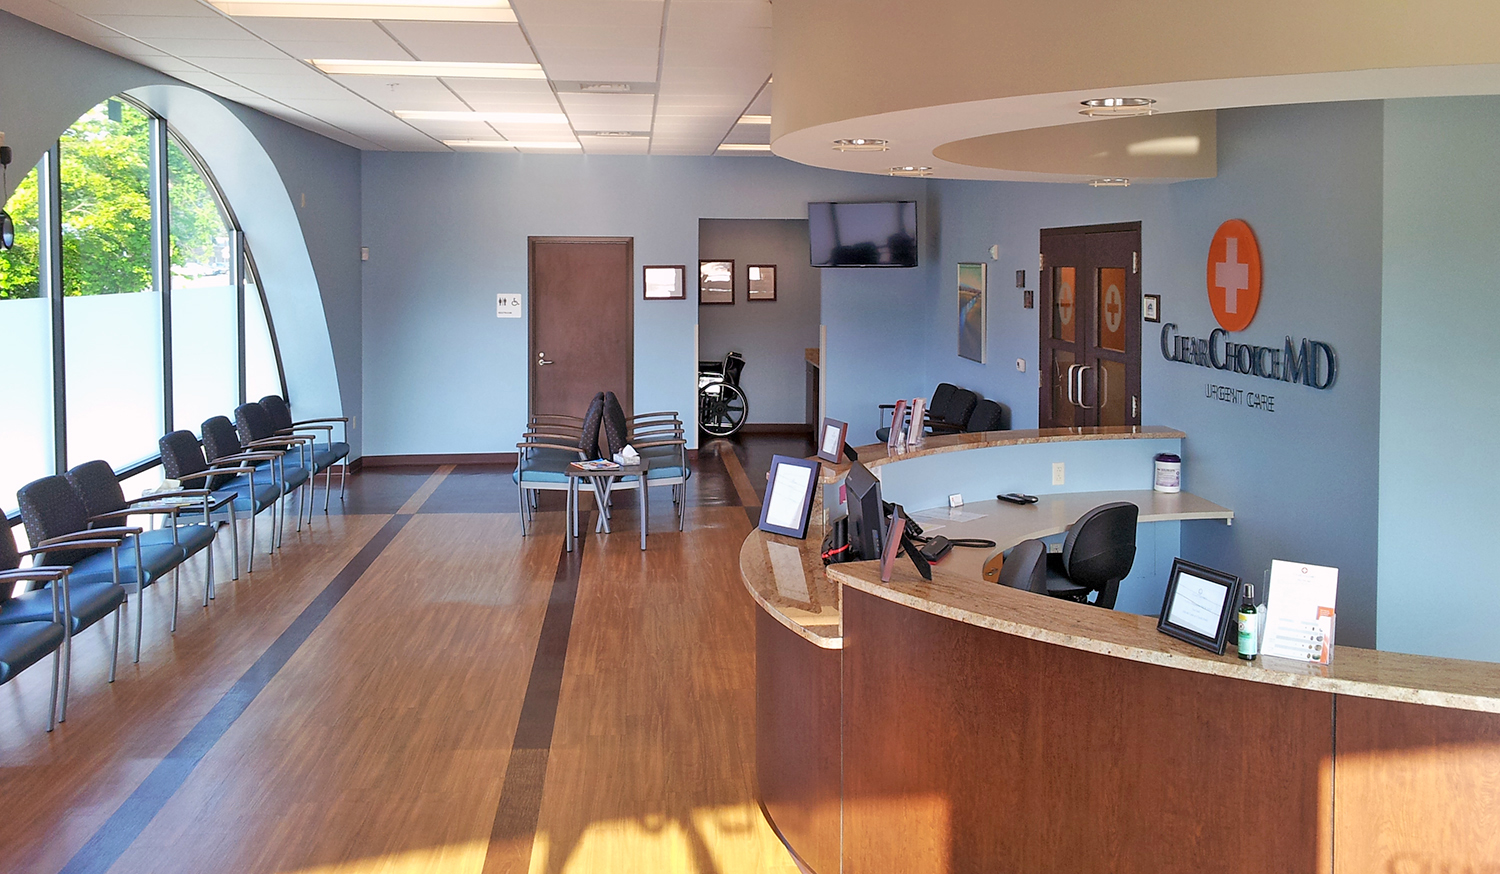 ClearChoiceMD Urgent Care - Lebanon, NH - Urgent Care Solv in Lebanon, NH